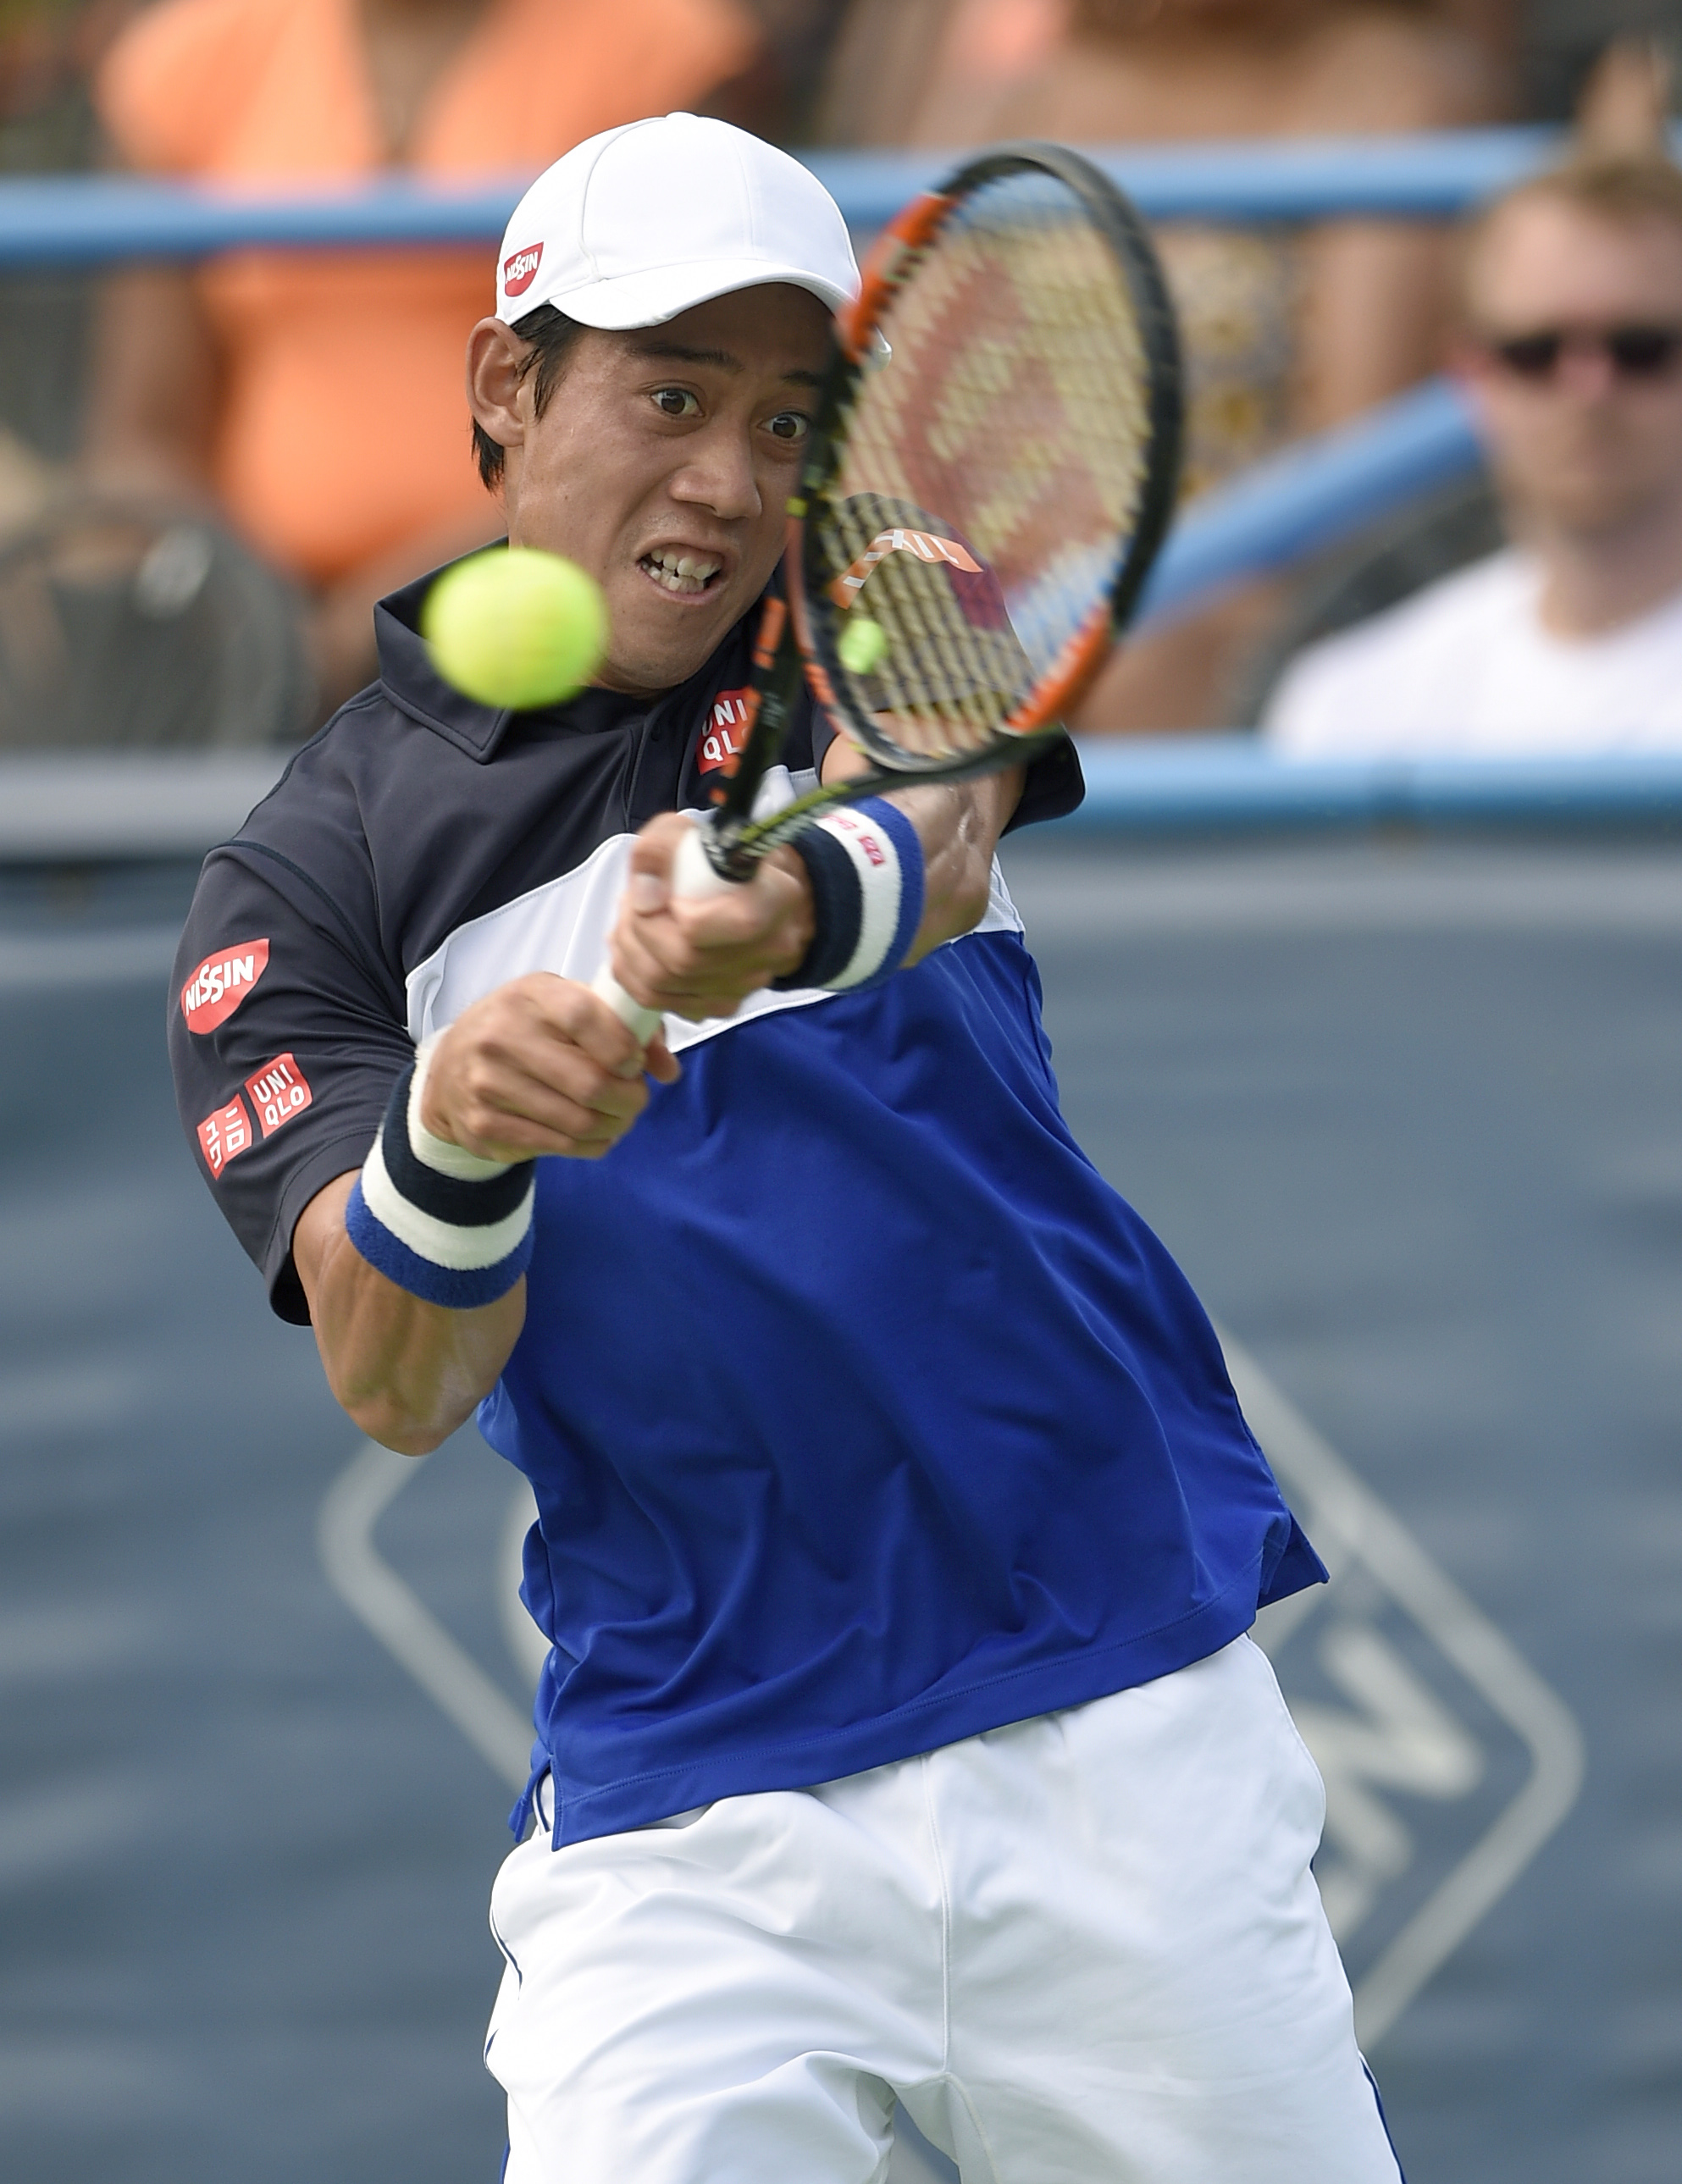 Kei Nishikori, of Japan, returns the ball against Marin Cilic, of Croatia, at the Citi Open tennis tournament, Saturday, Aug. 8, 2015, in Washington. (AP Photo/Nick Wass)